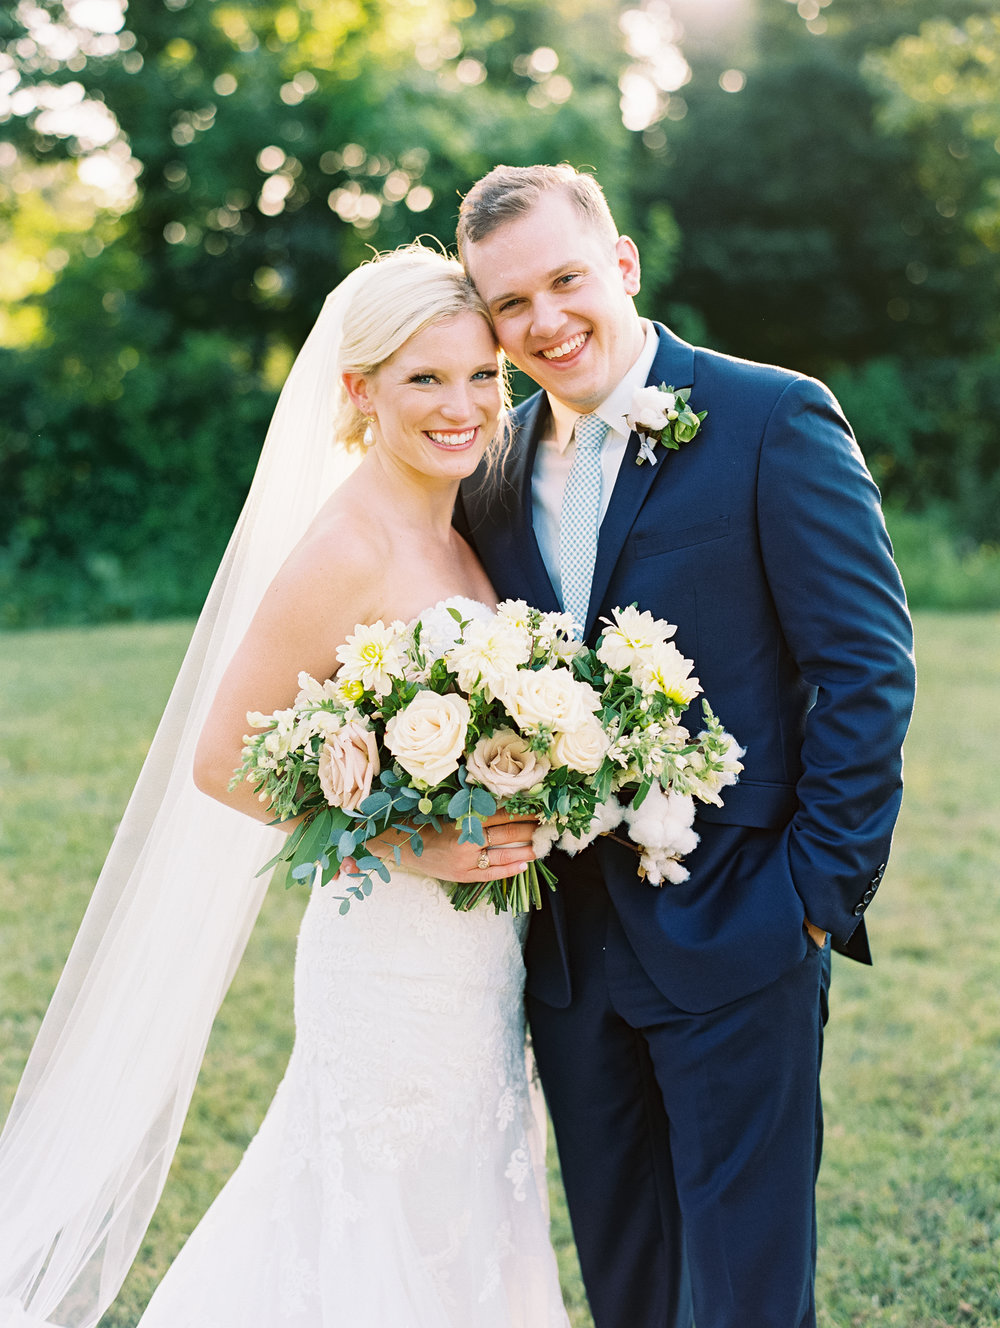 Joyful Summer Wedding - Lindsey Brunk